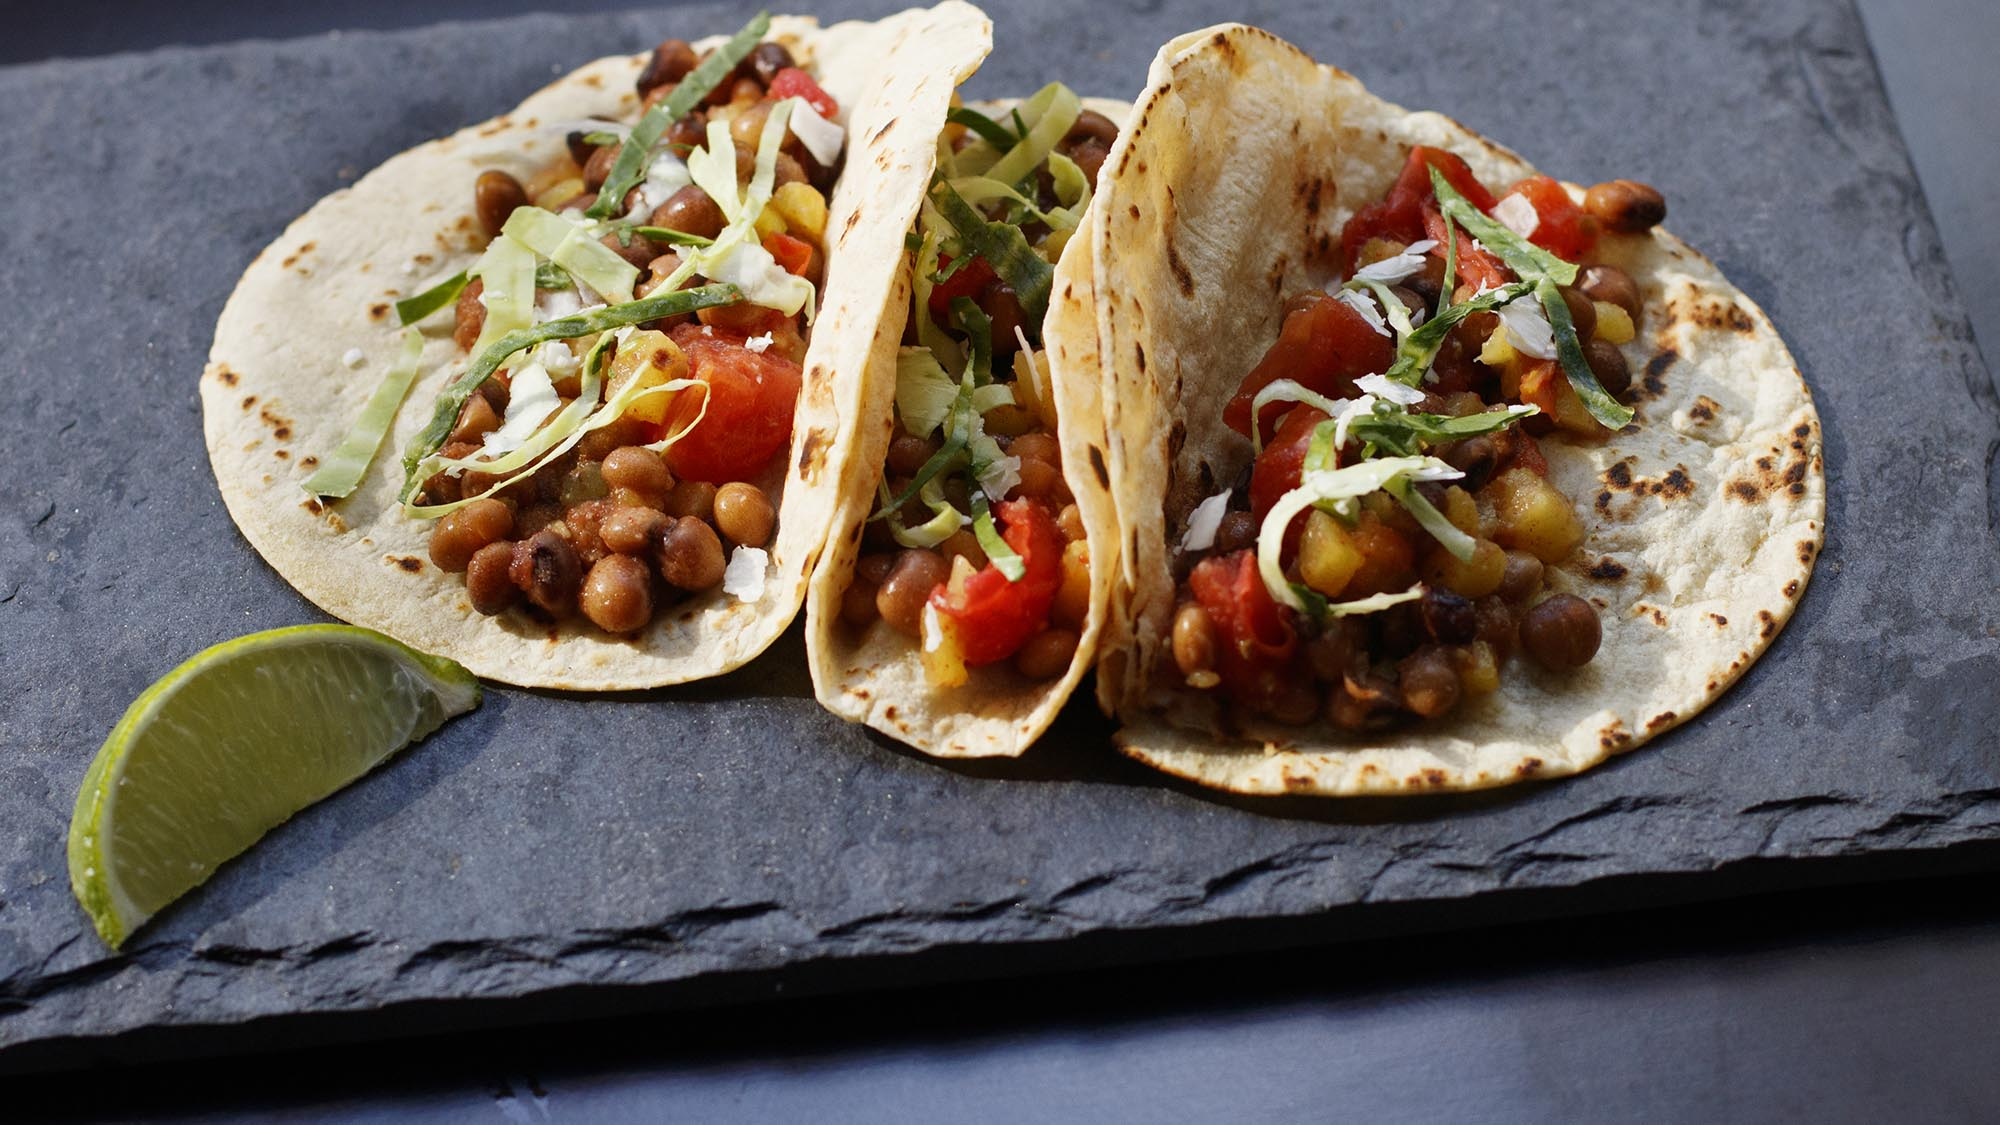 Pigeon_Pea_Tacos_Al_Pastor_with_Coconut_Lime_Slaw_2000x1125.jpg